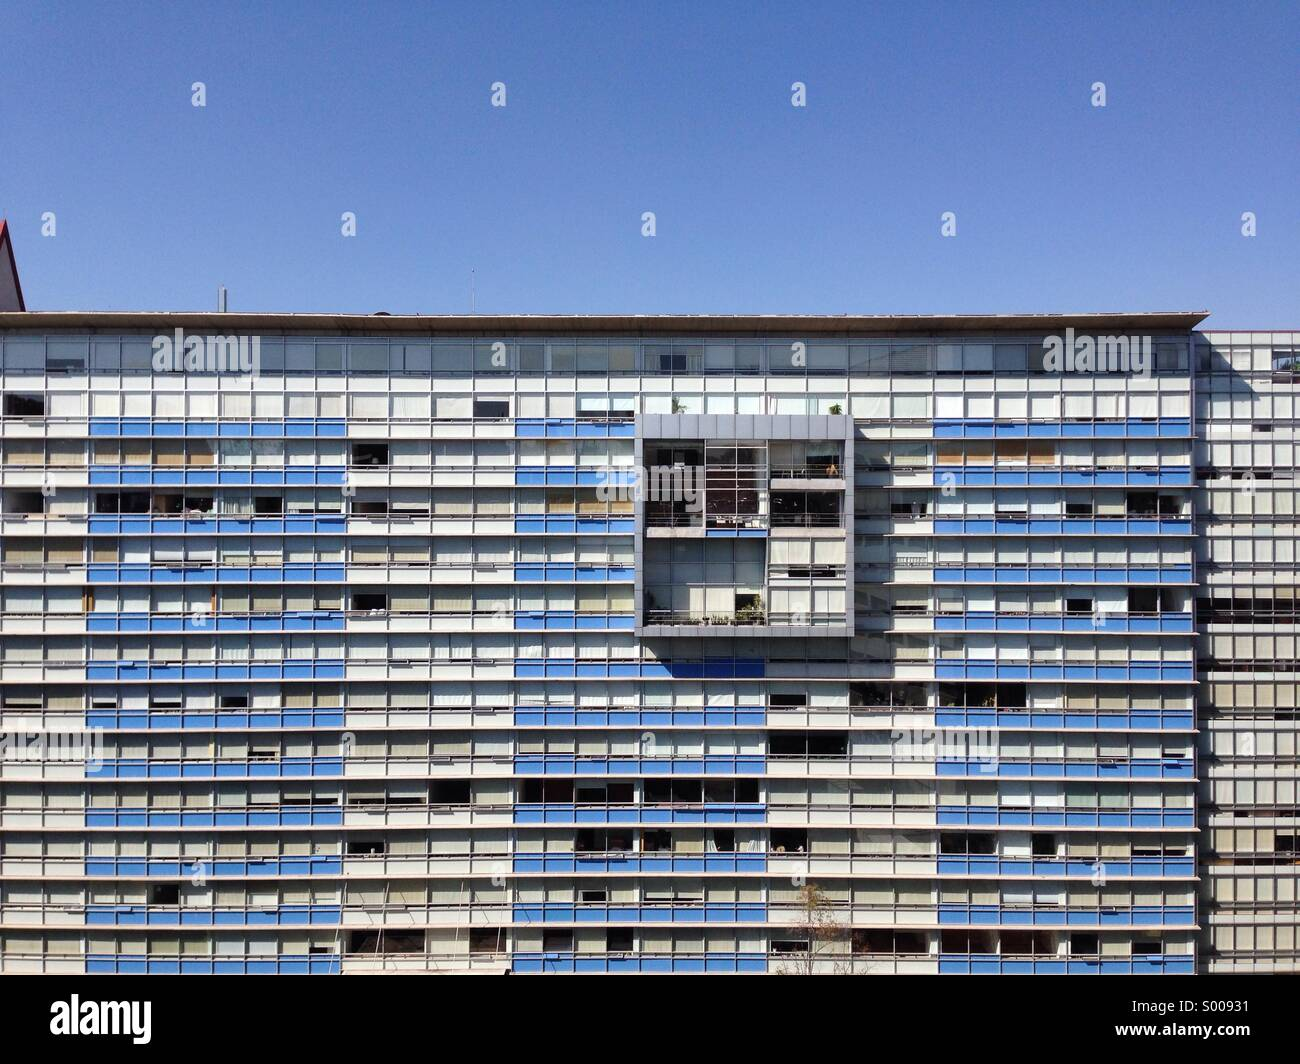 Apartment Building Bosques De Las Lomas Mexico City Stock Photo Alamy